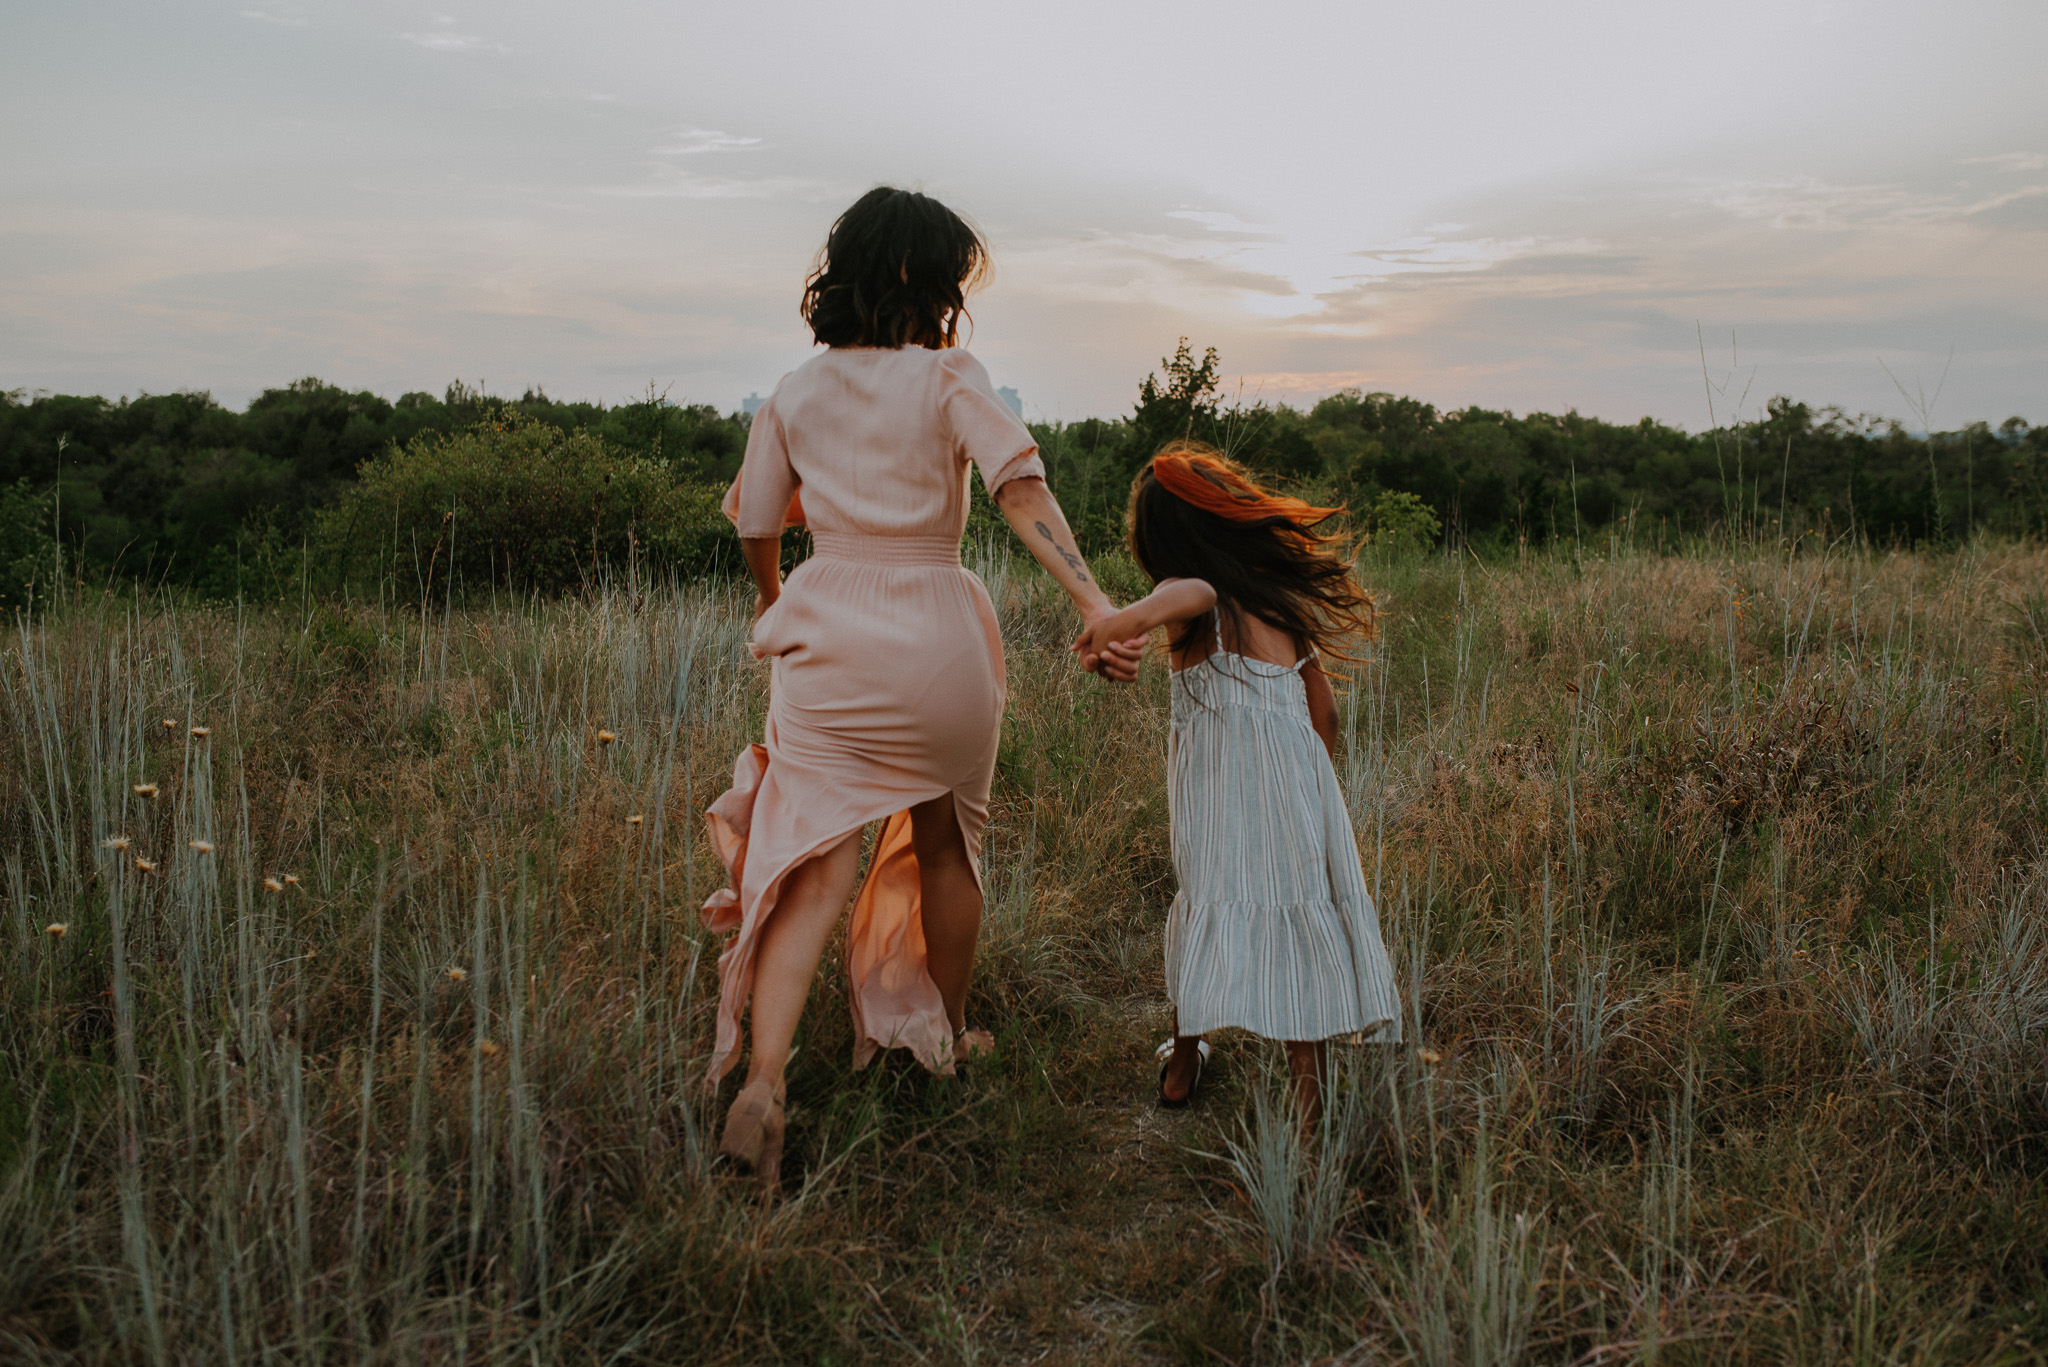 Jessi-marie-photography-dallas-fort-worth-texas-family-photographer-tandy-hills-natural-area-43